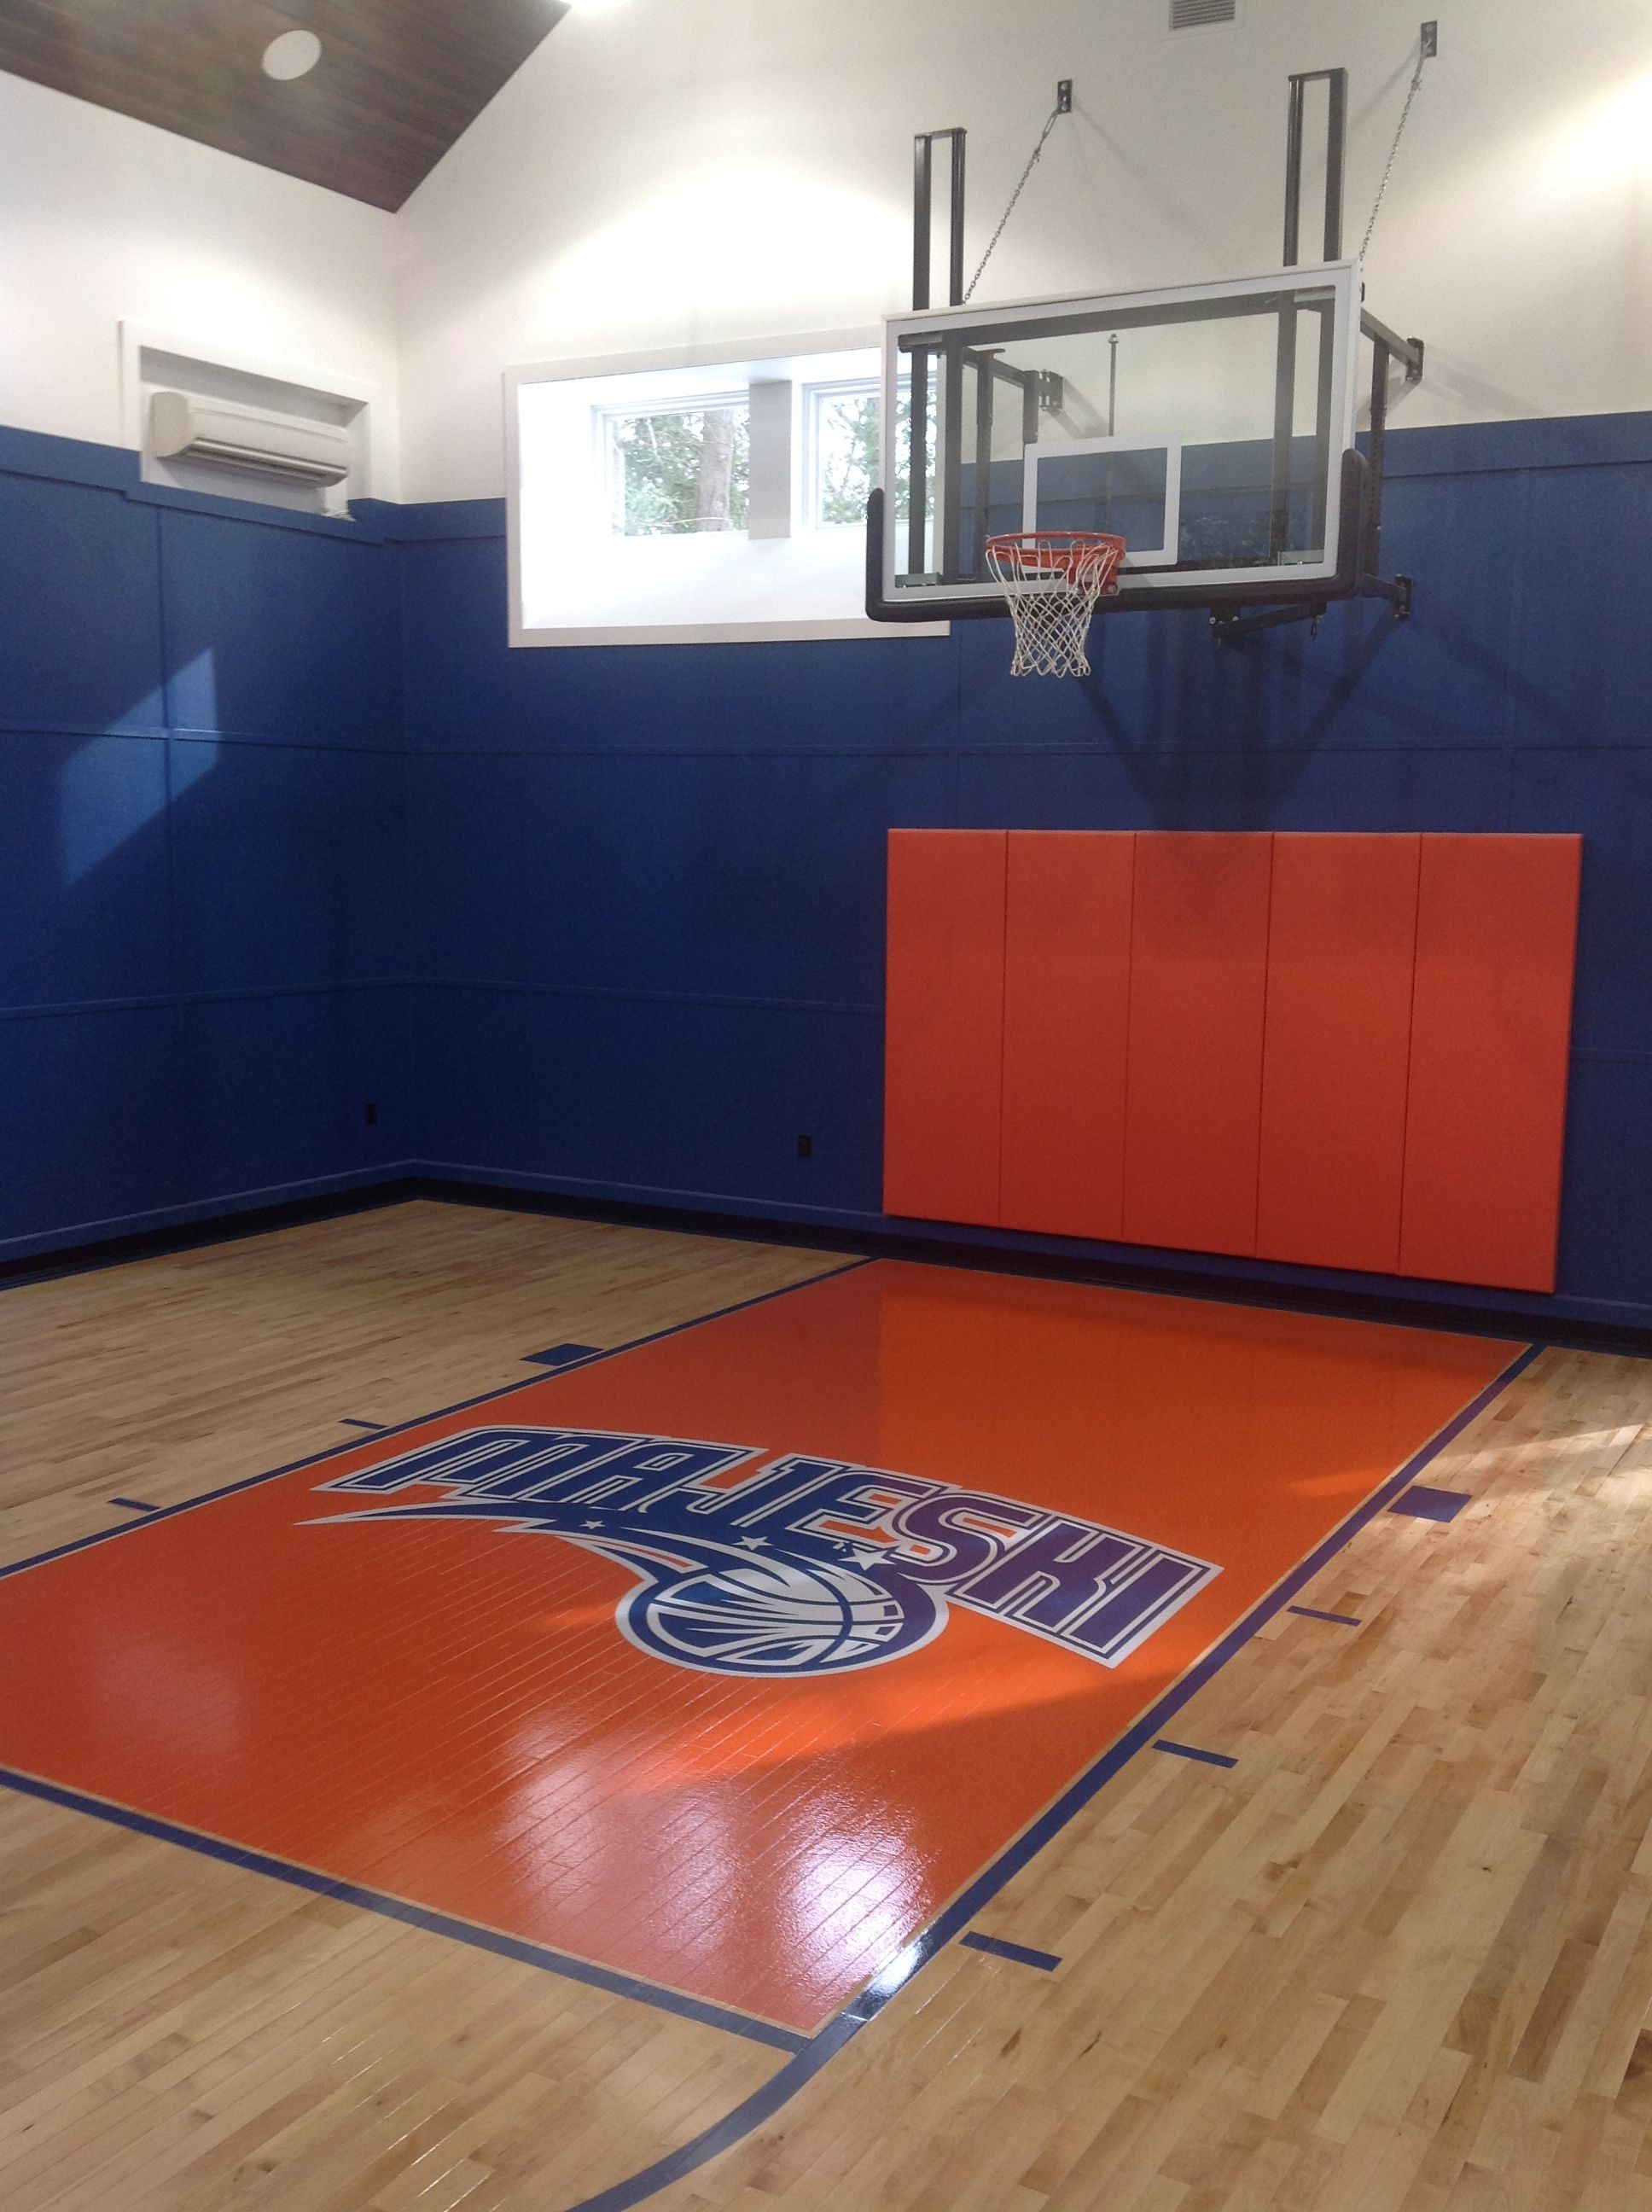 Indoor basketball court at a residence in princeton nj for Indoor basketball court installation